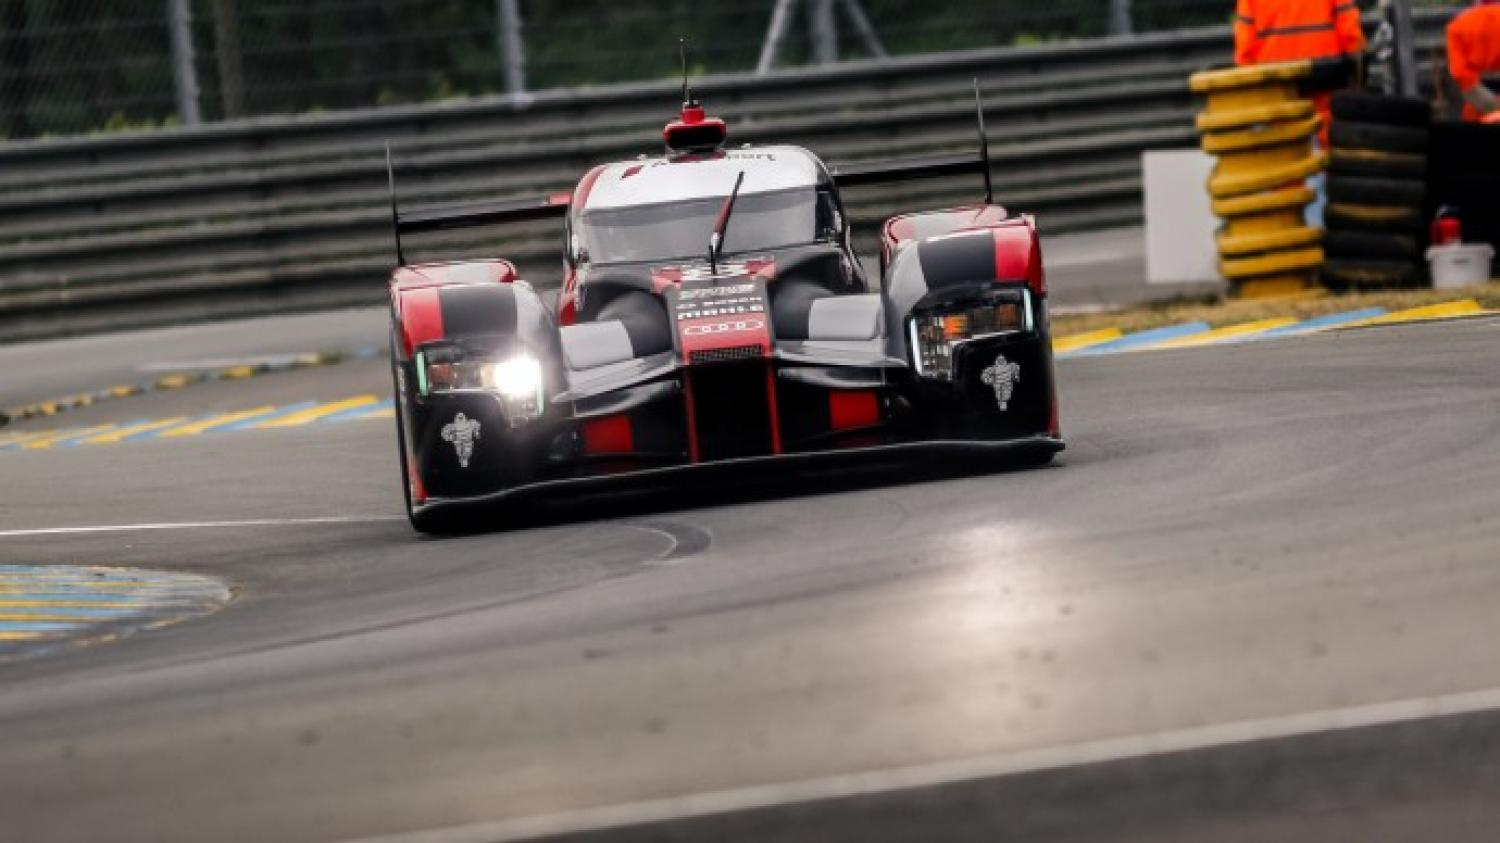 24 Hours of Le Mans Free Practice - Audi leads at the half-way stage